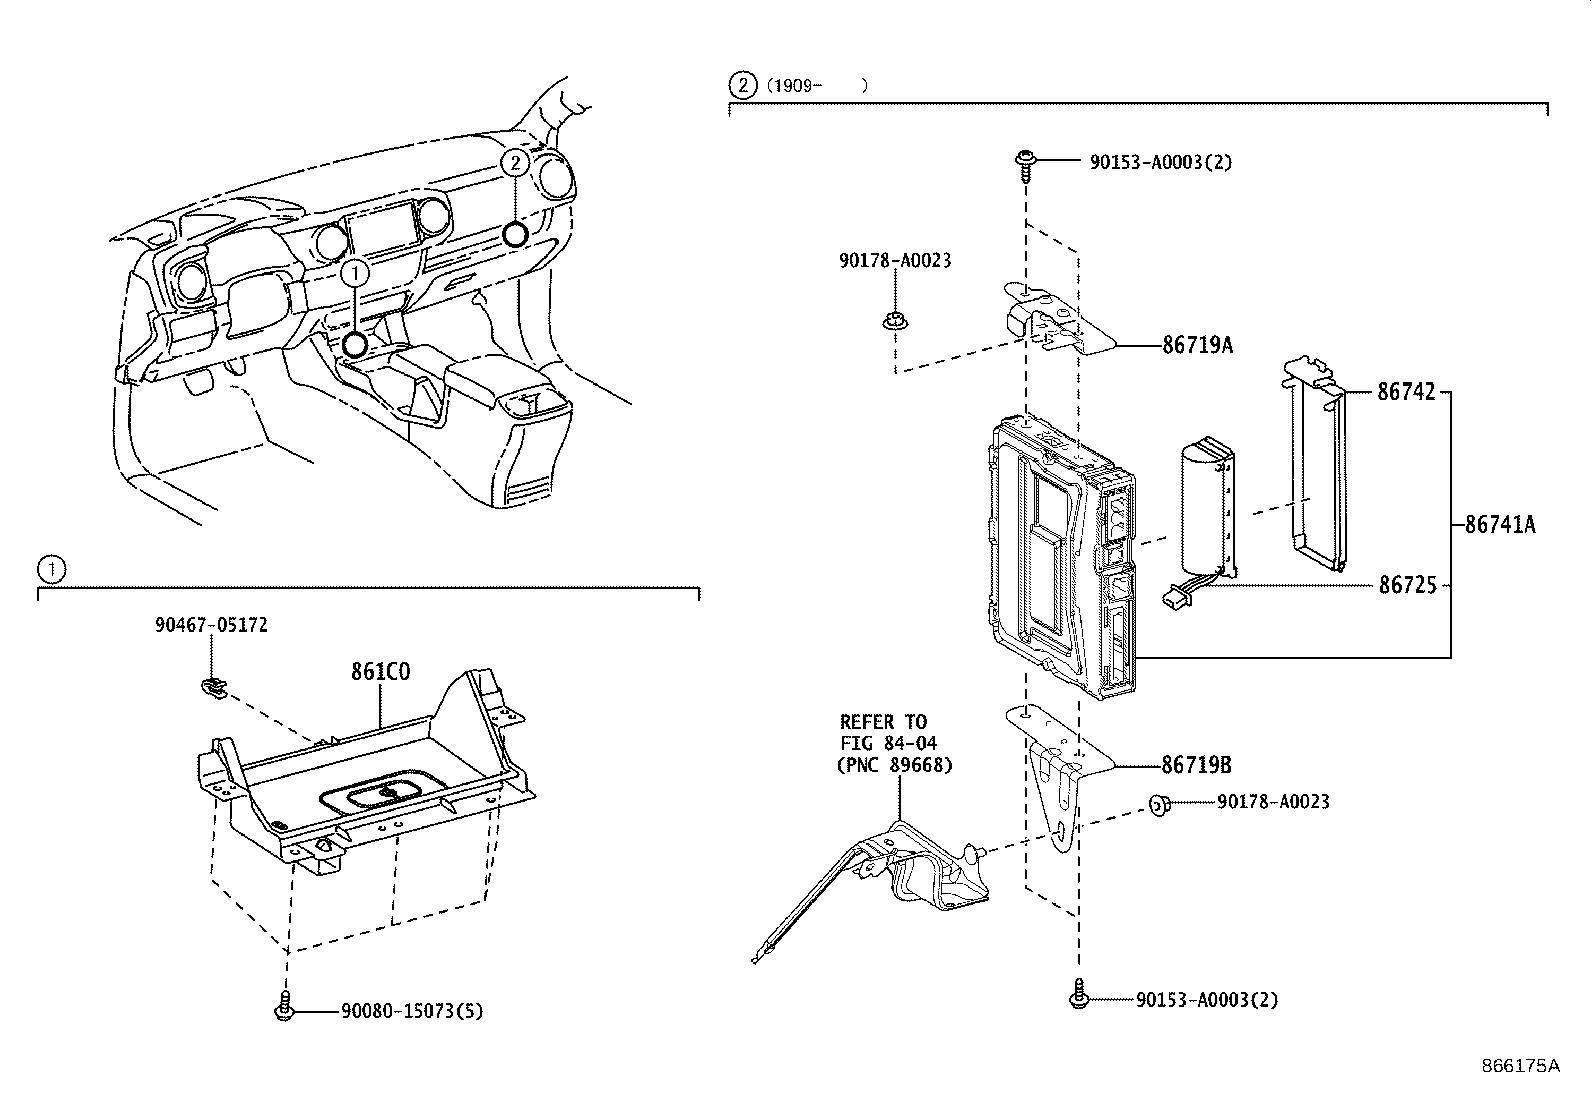 Toyota Tacoma Cradle assembly, mobile wireless charger